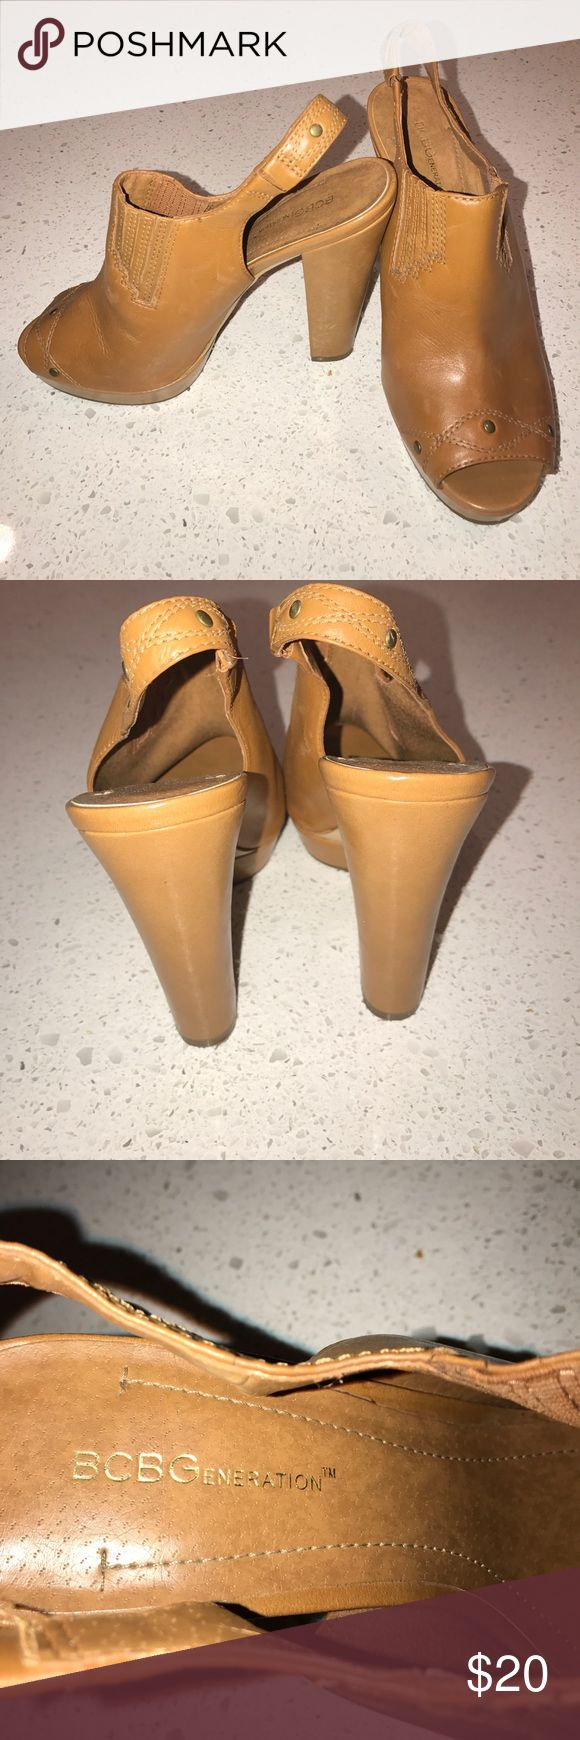 "💓REDUCED💓BCBG Platform Sling-back Open Tow Mules 1"" platform, camel colored leather, no scuffs on heels, heel caps intact, gently used. BCBGeneration Shoes Platforms"